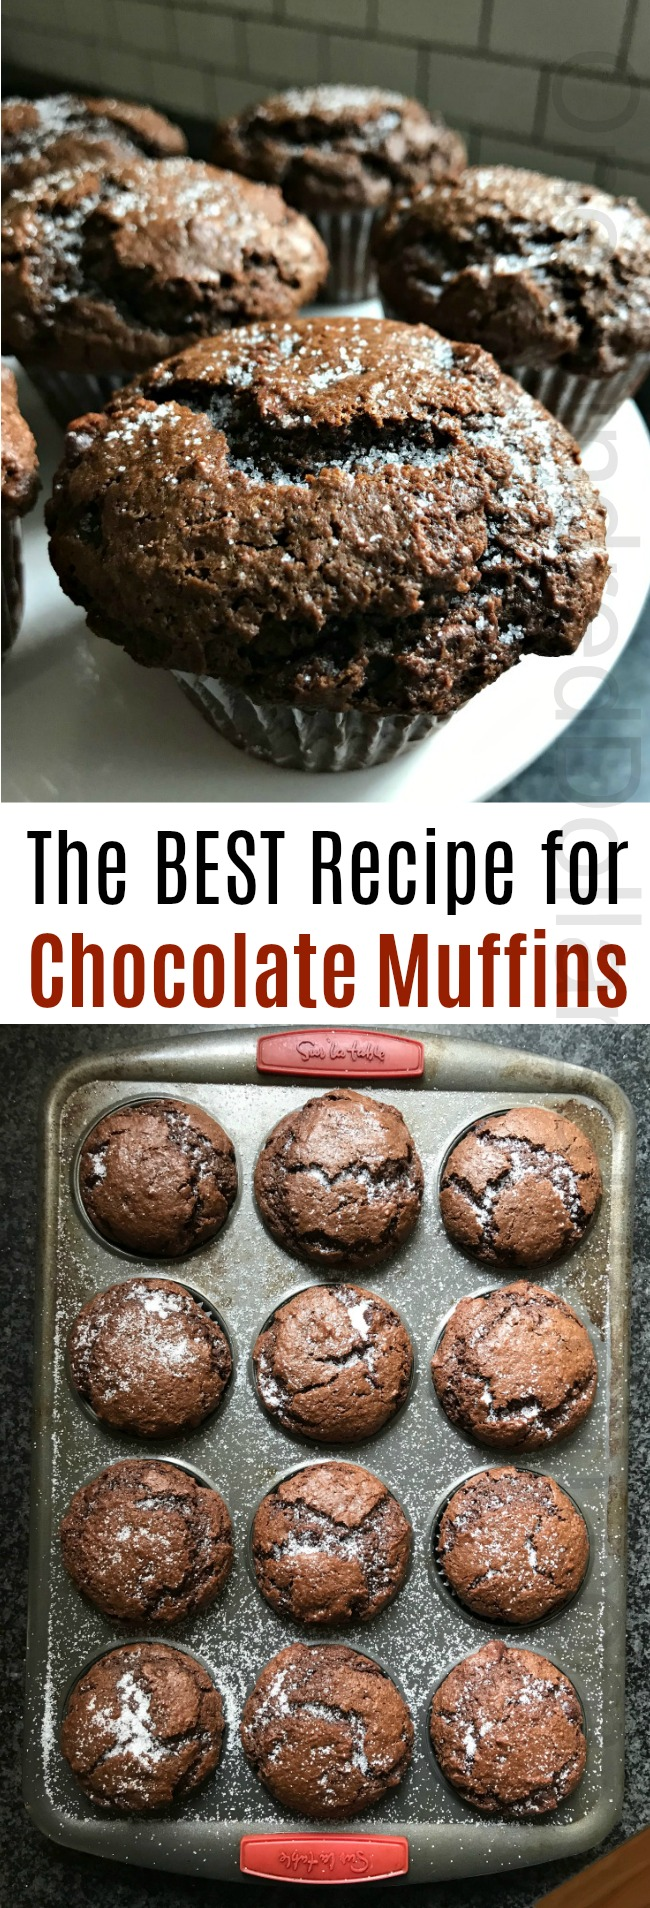 The BEST Recipe for Chocolate Muffins